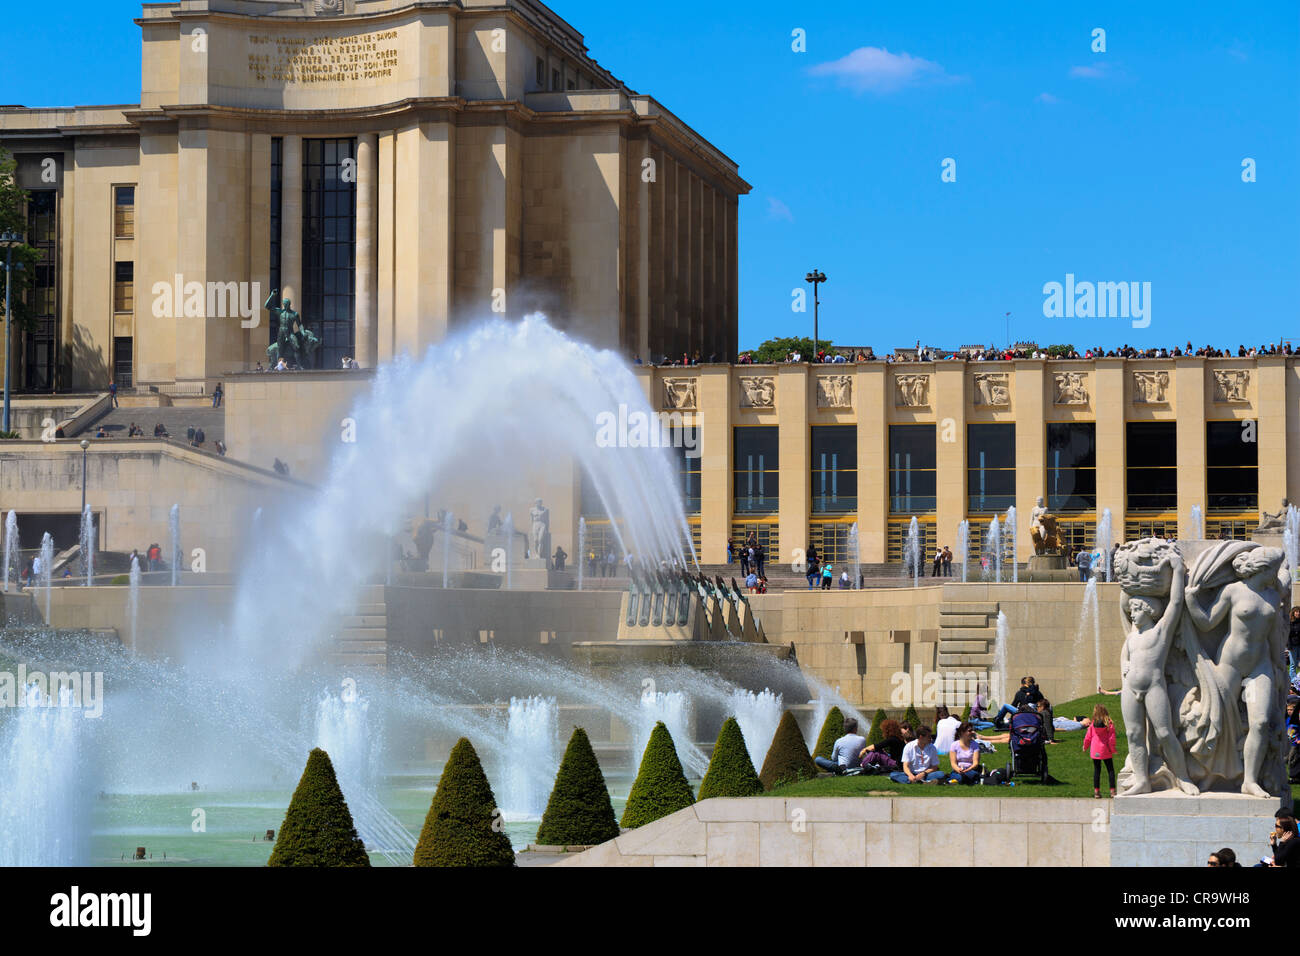 Water cannons at Trocadero Gardens, Paris. Museums of the Palais de Chaillot overlook the gardens with the Fountains - Stock Image